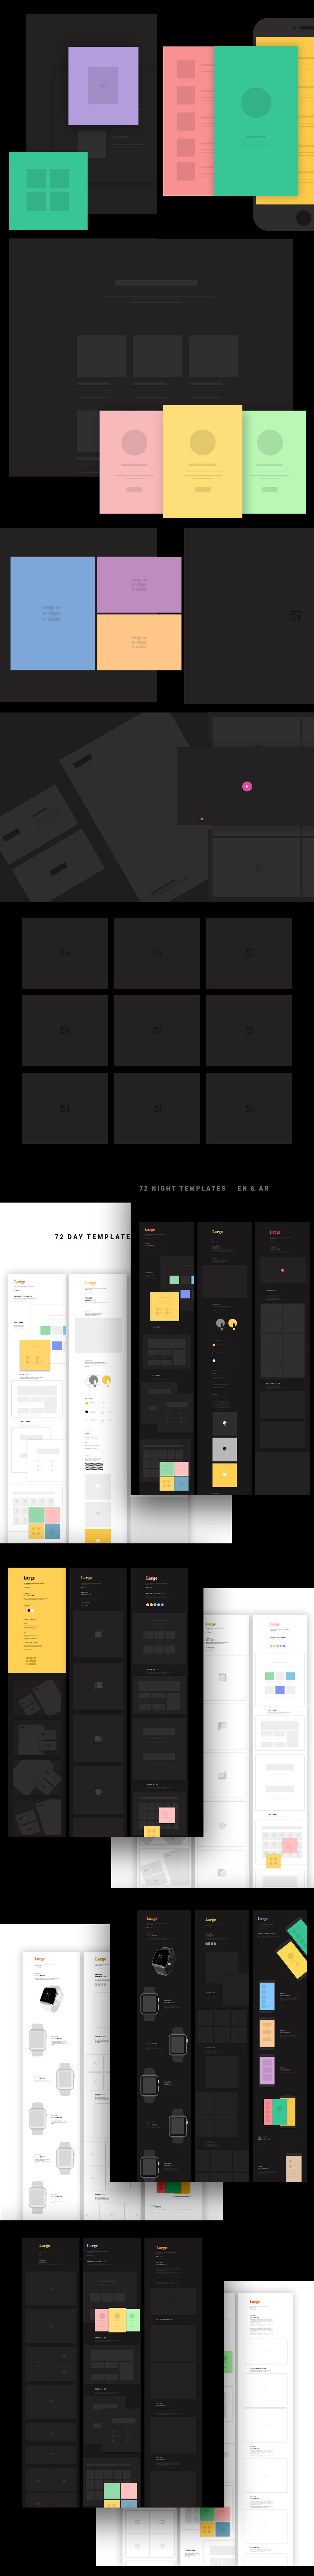 140 Mockup Layouts to Present Your Work